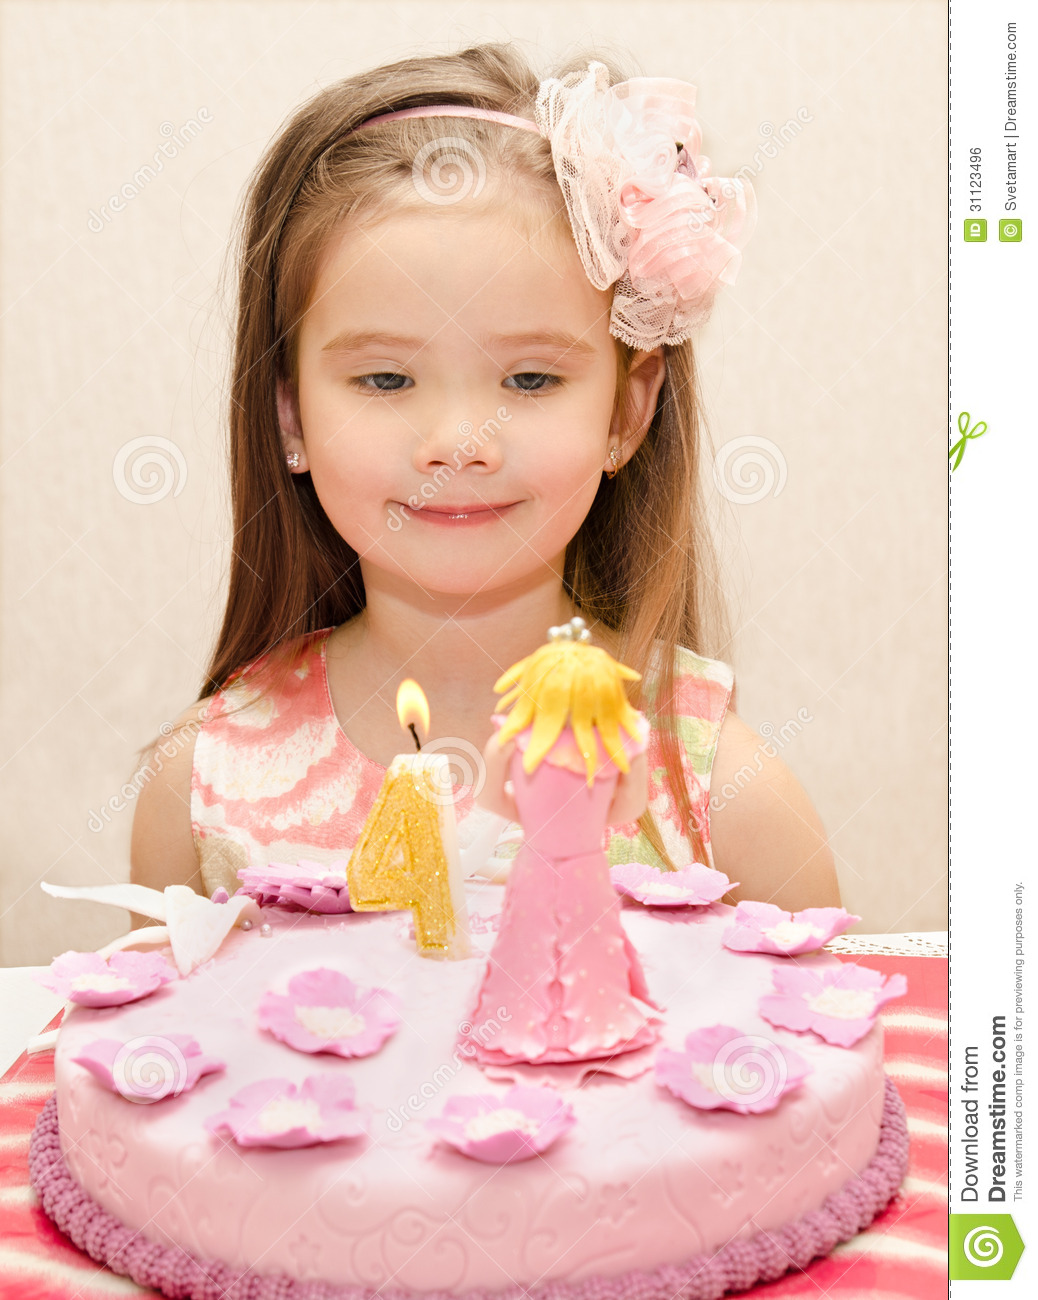 Portrait Of Little Girl And Her Birthday Cake Royalty Free Stock Image ...